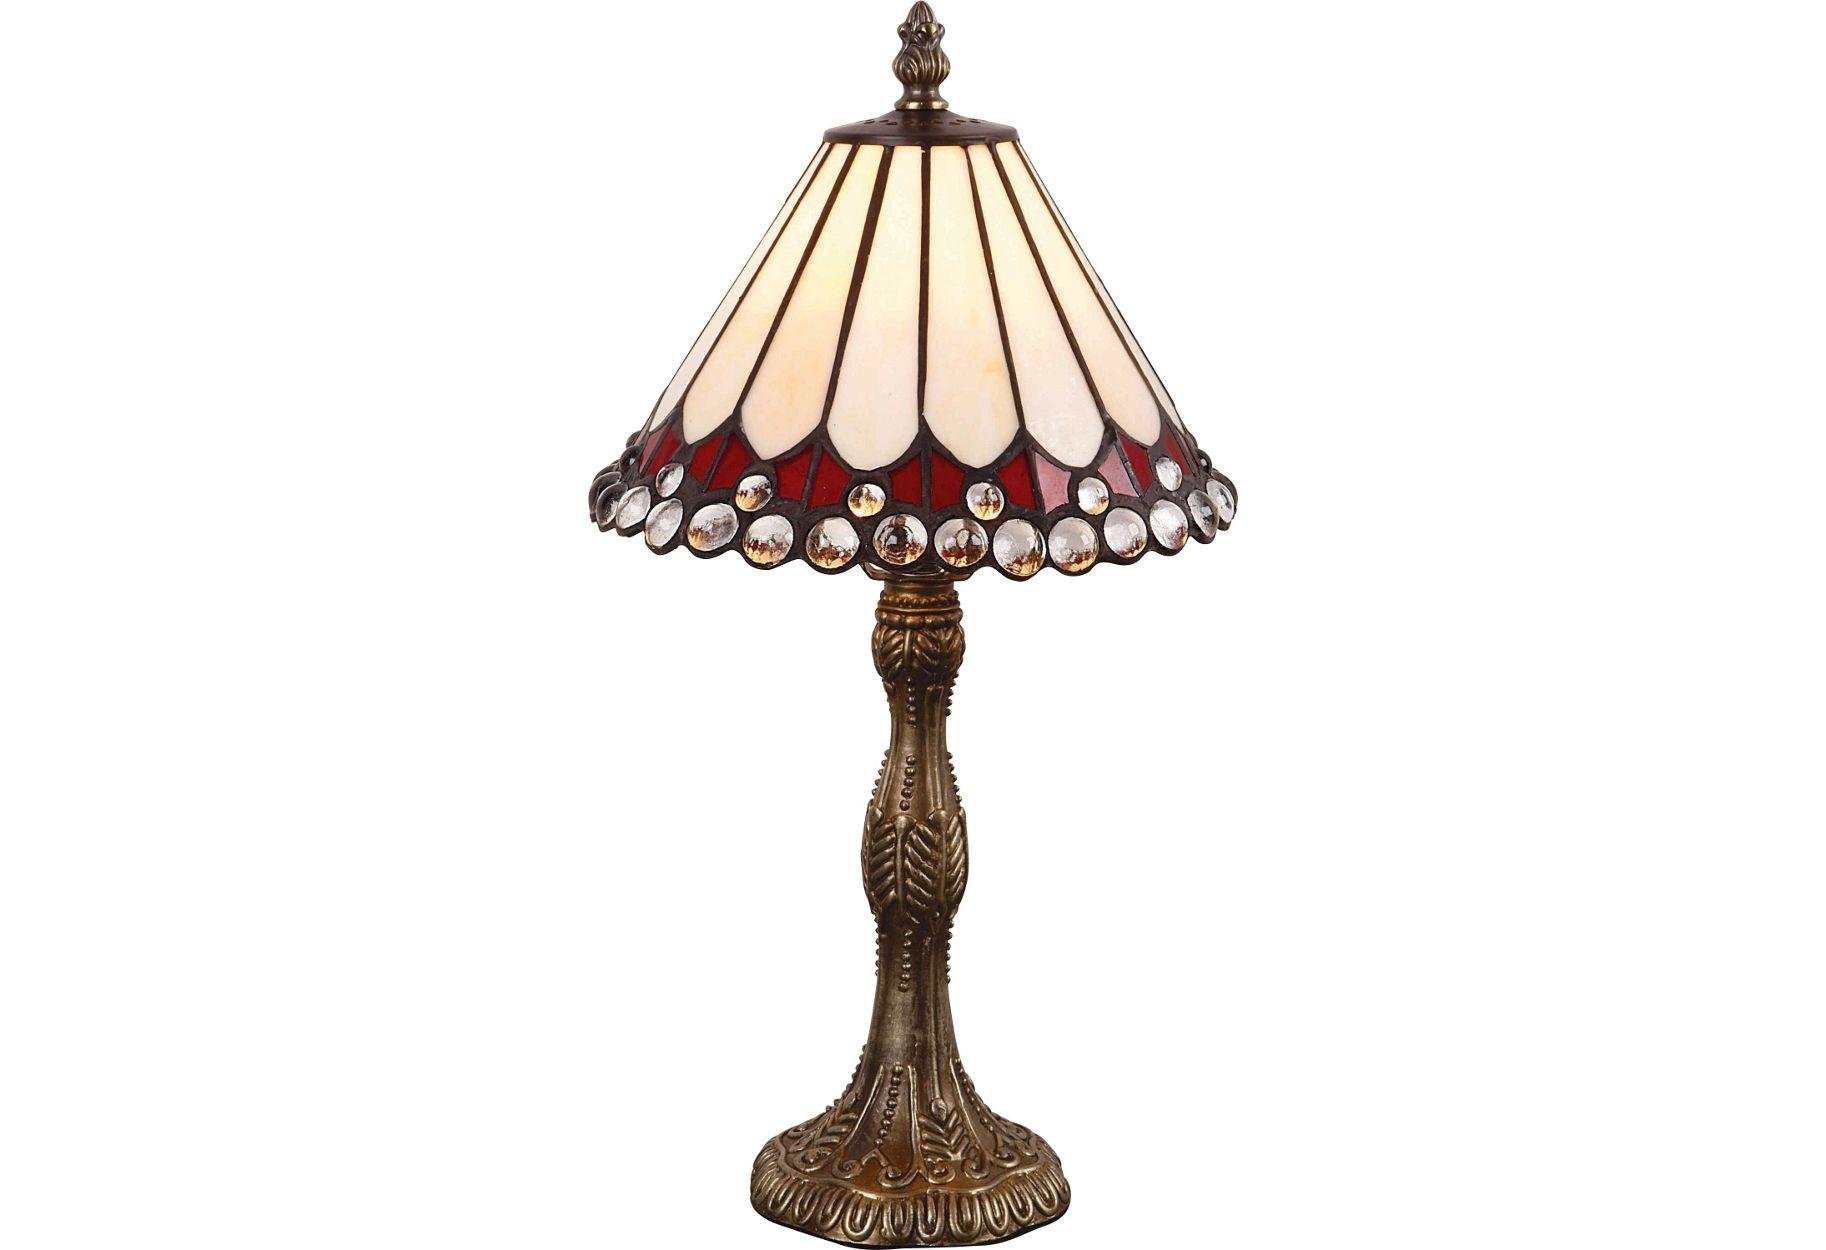 Tiffany Table Lamps Lamp Boehme